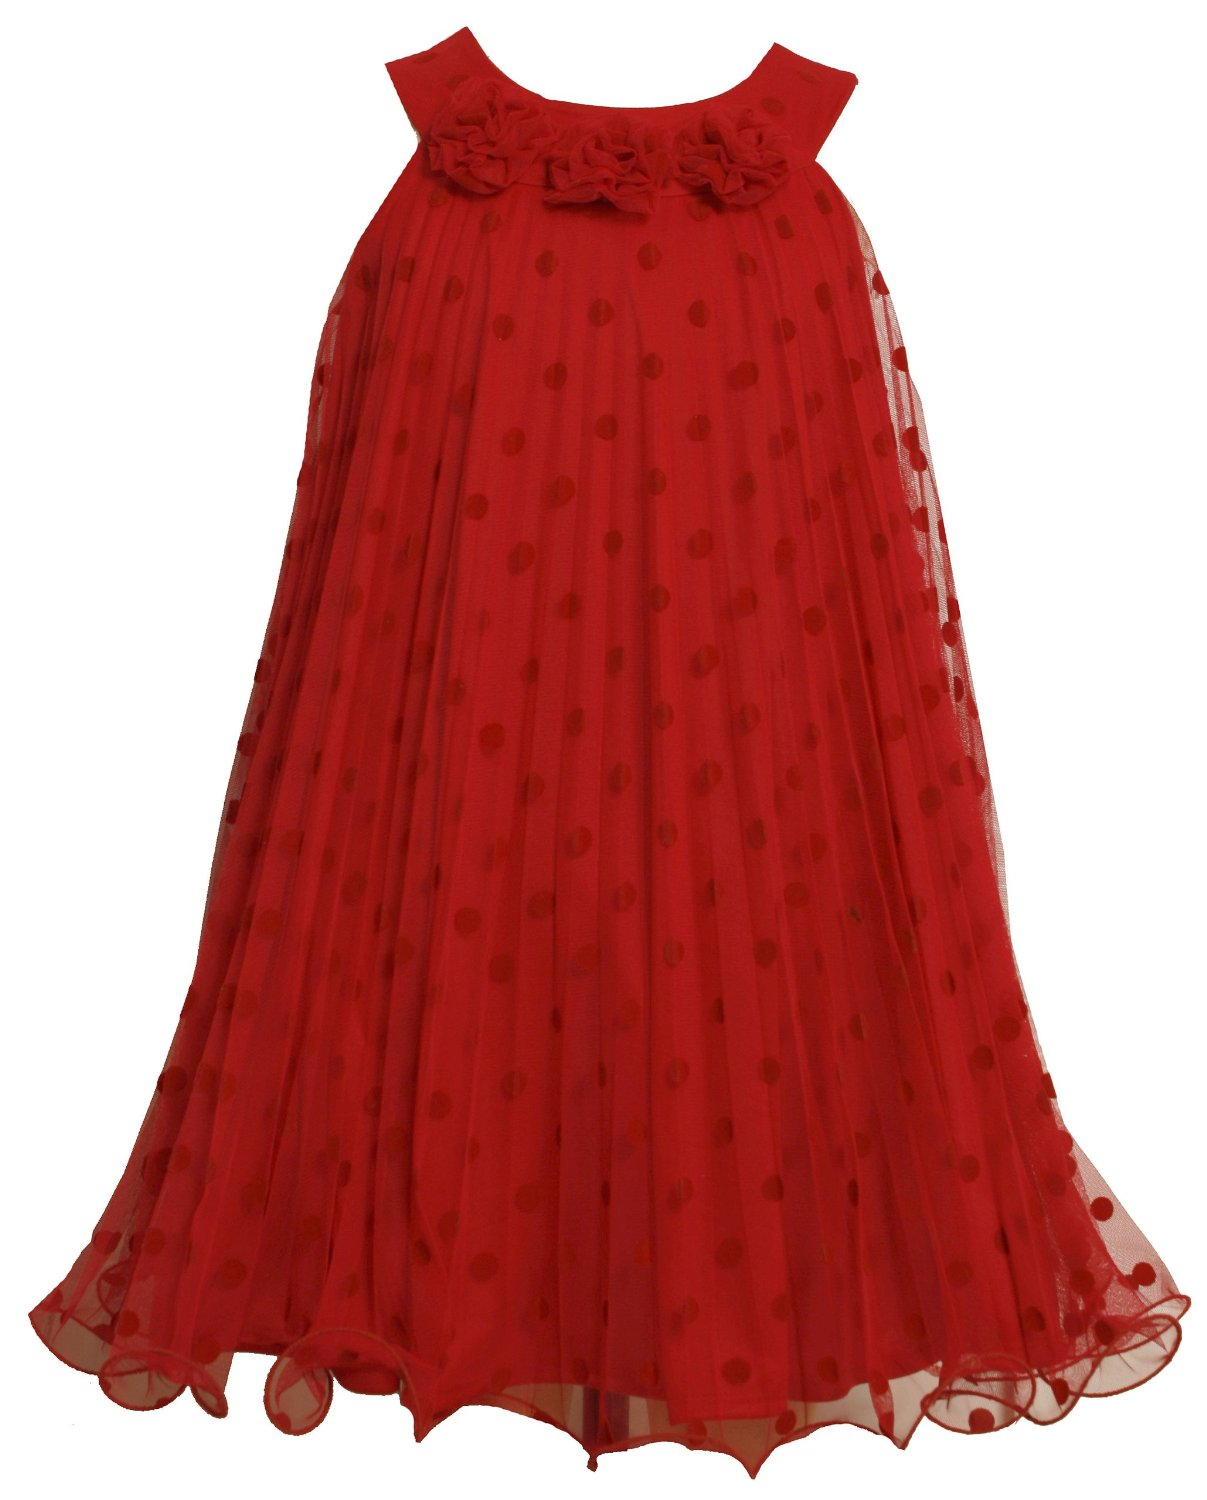 Bonnie Jean Girls Party Dress - Red Pleats Dots and Roses Infant to Girls 10